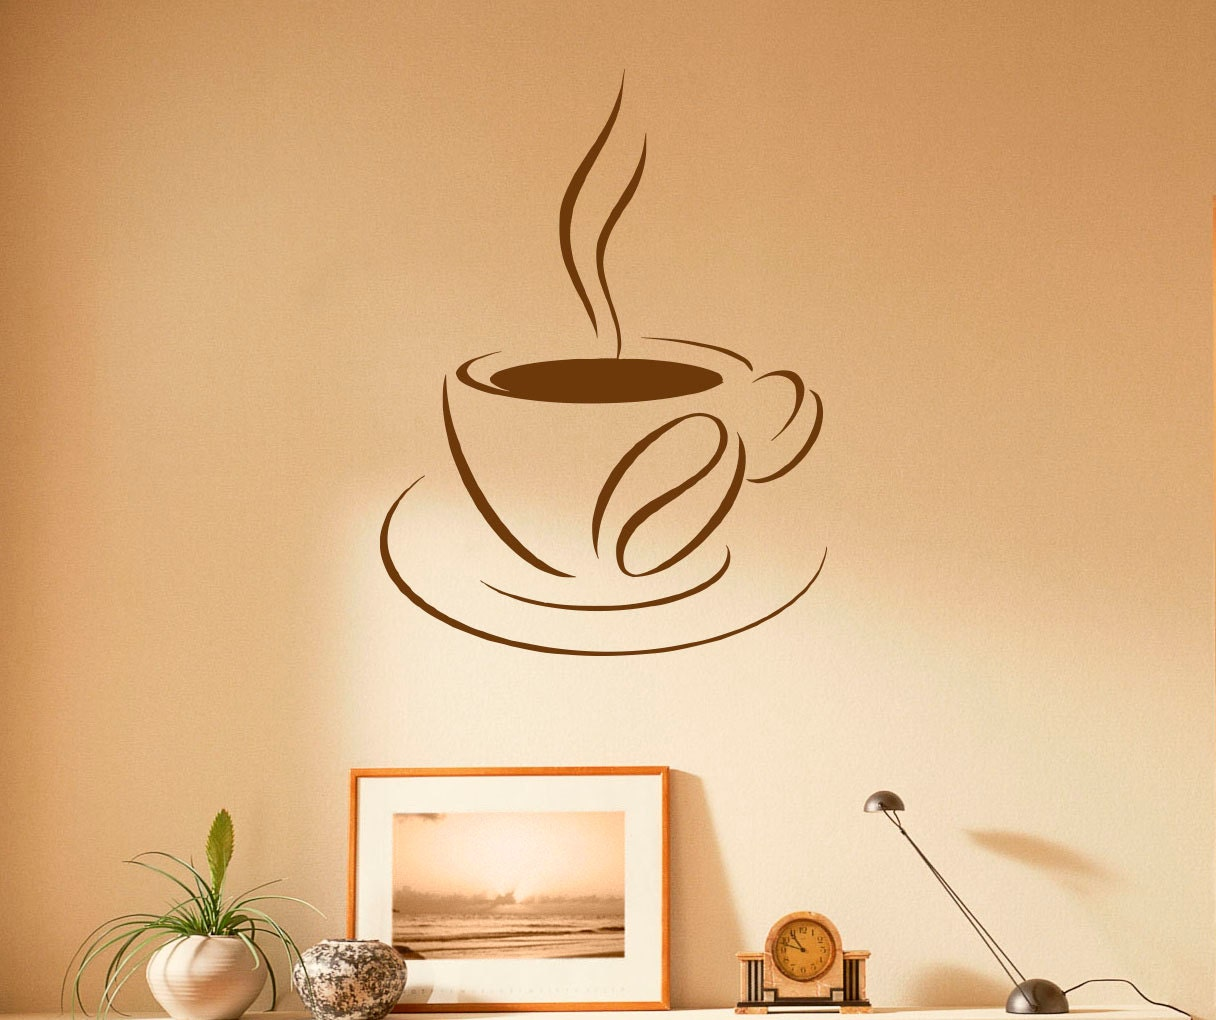 Coffee Cup Wall Decal Coffee House Vinyl Stickers Cafe   Etsy